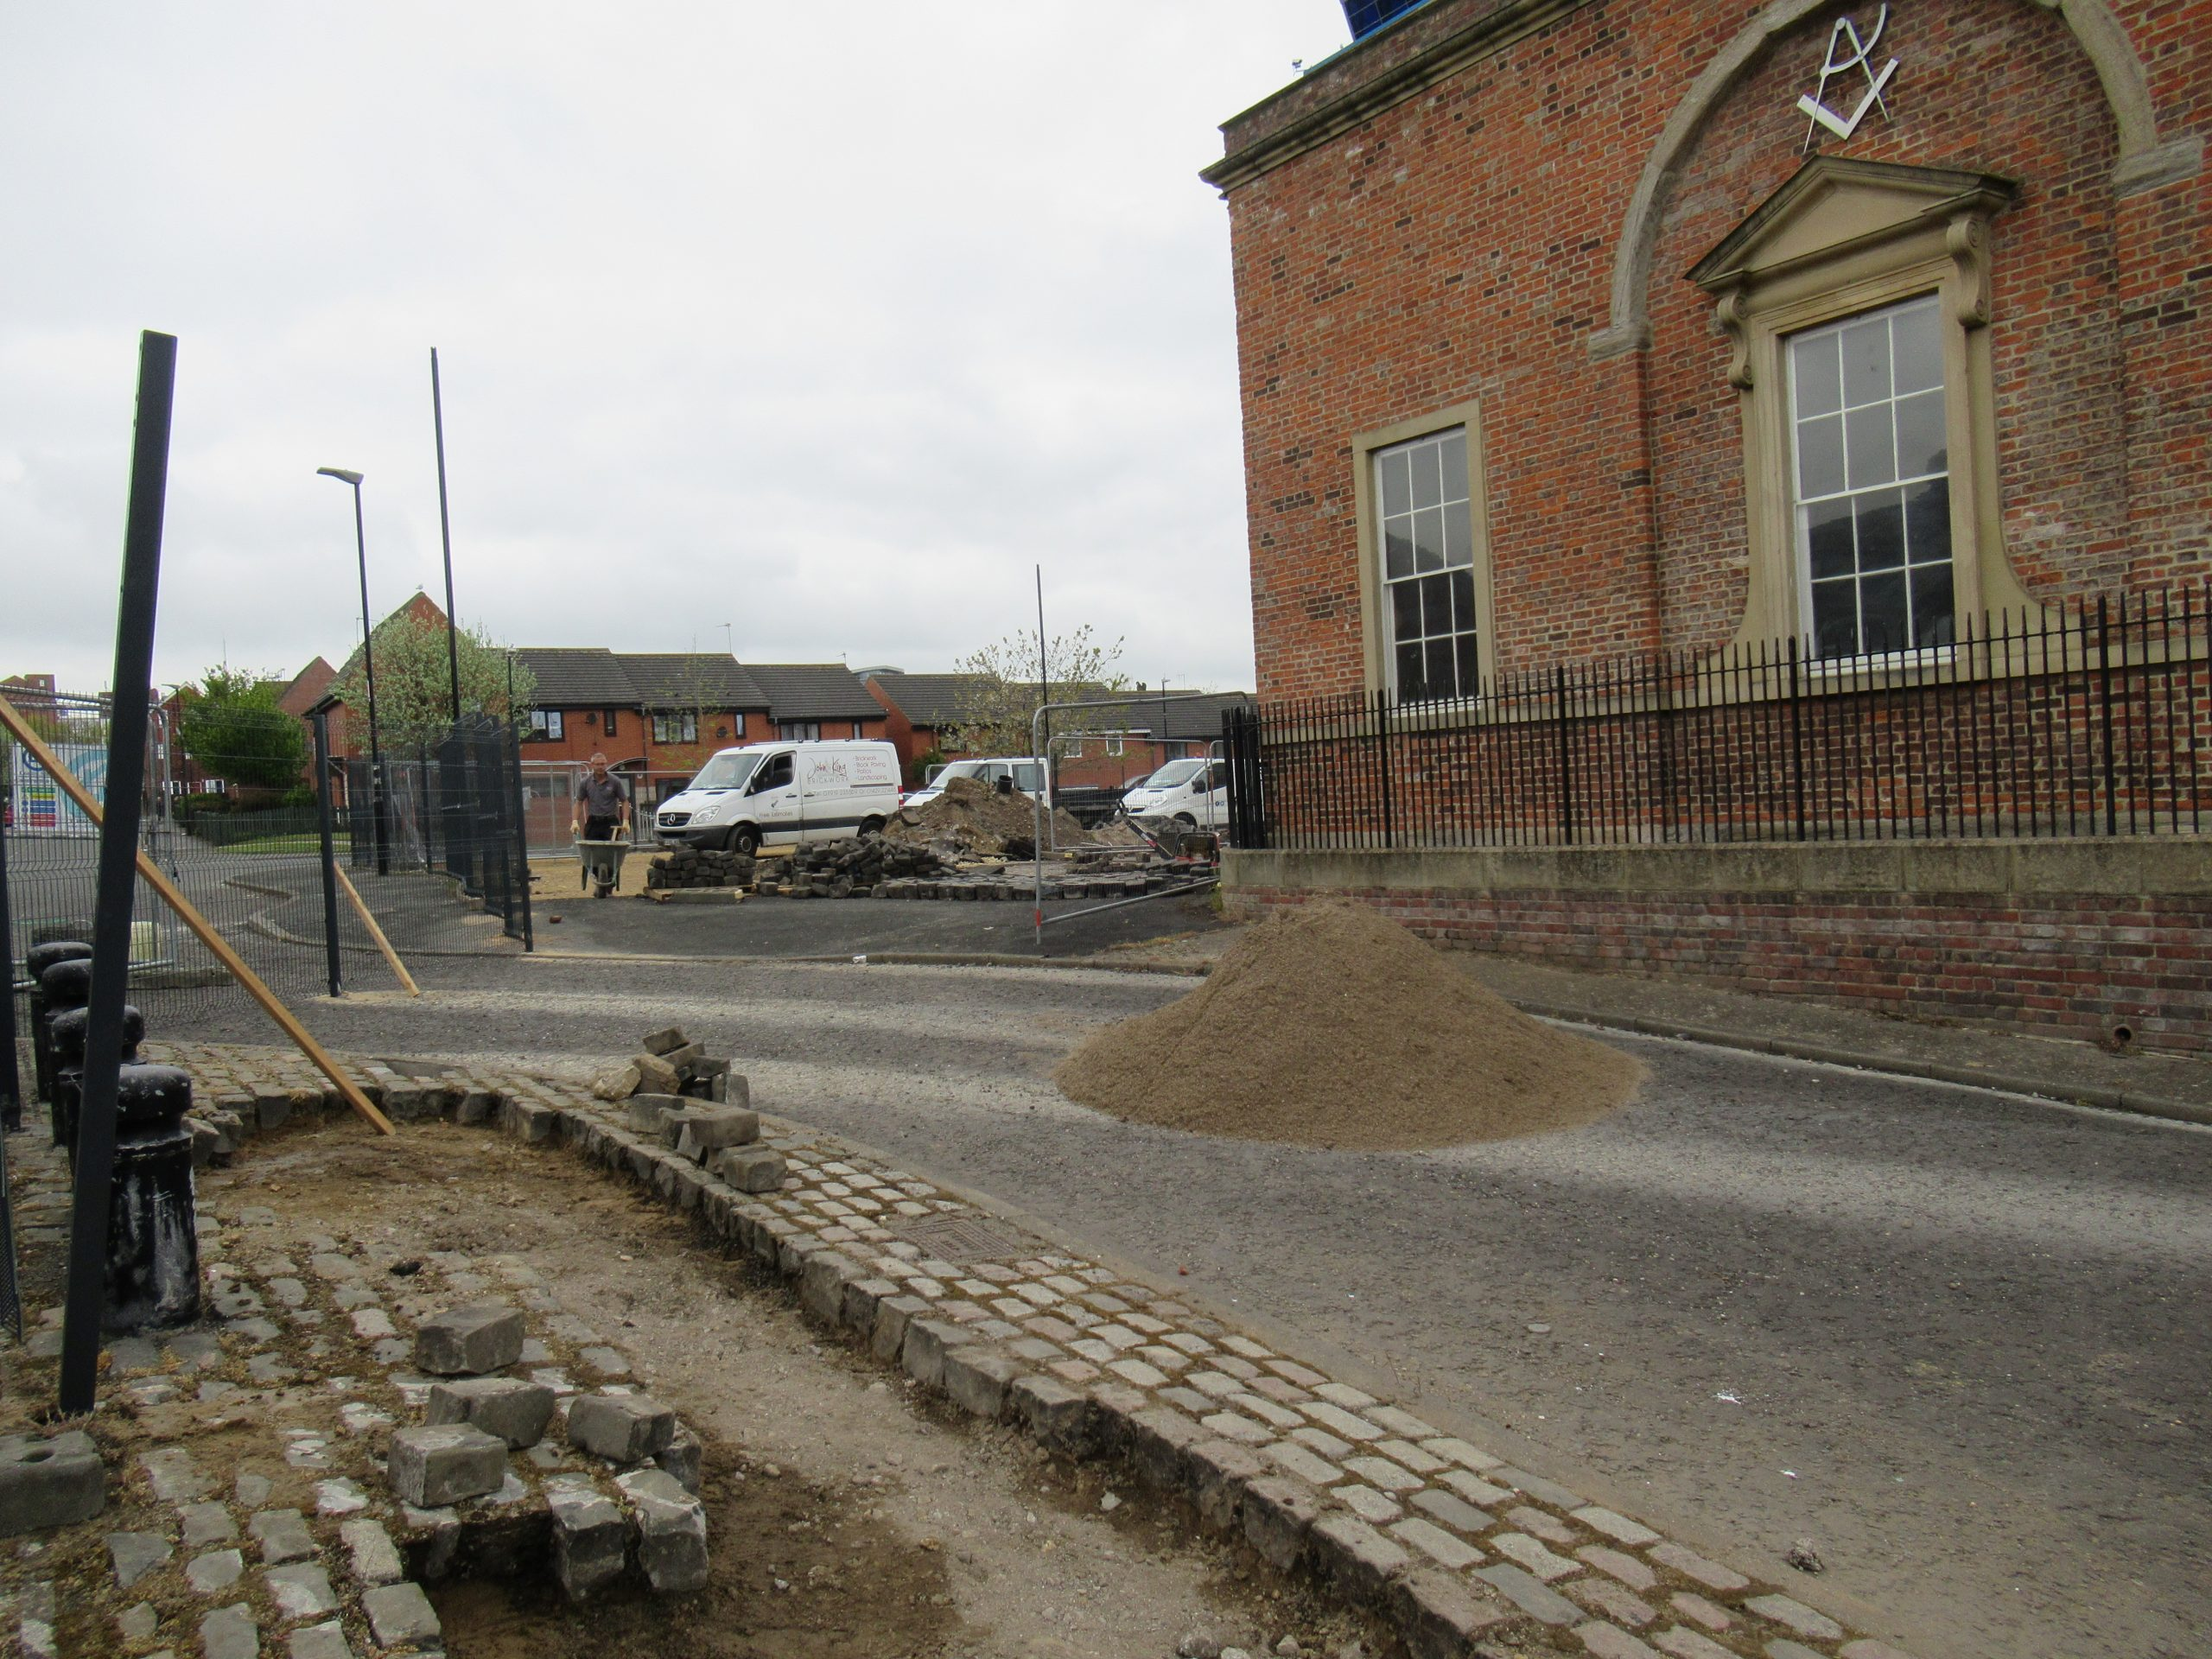 14th May 2021 relaying and leveling of cobbles plus fencing